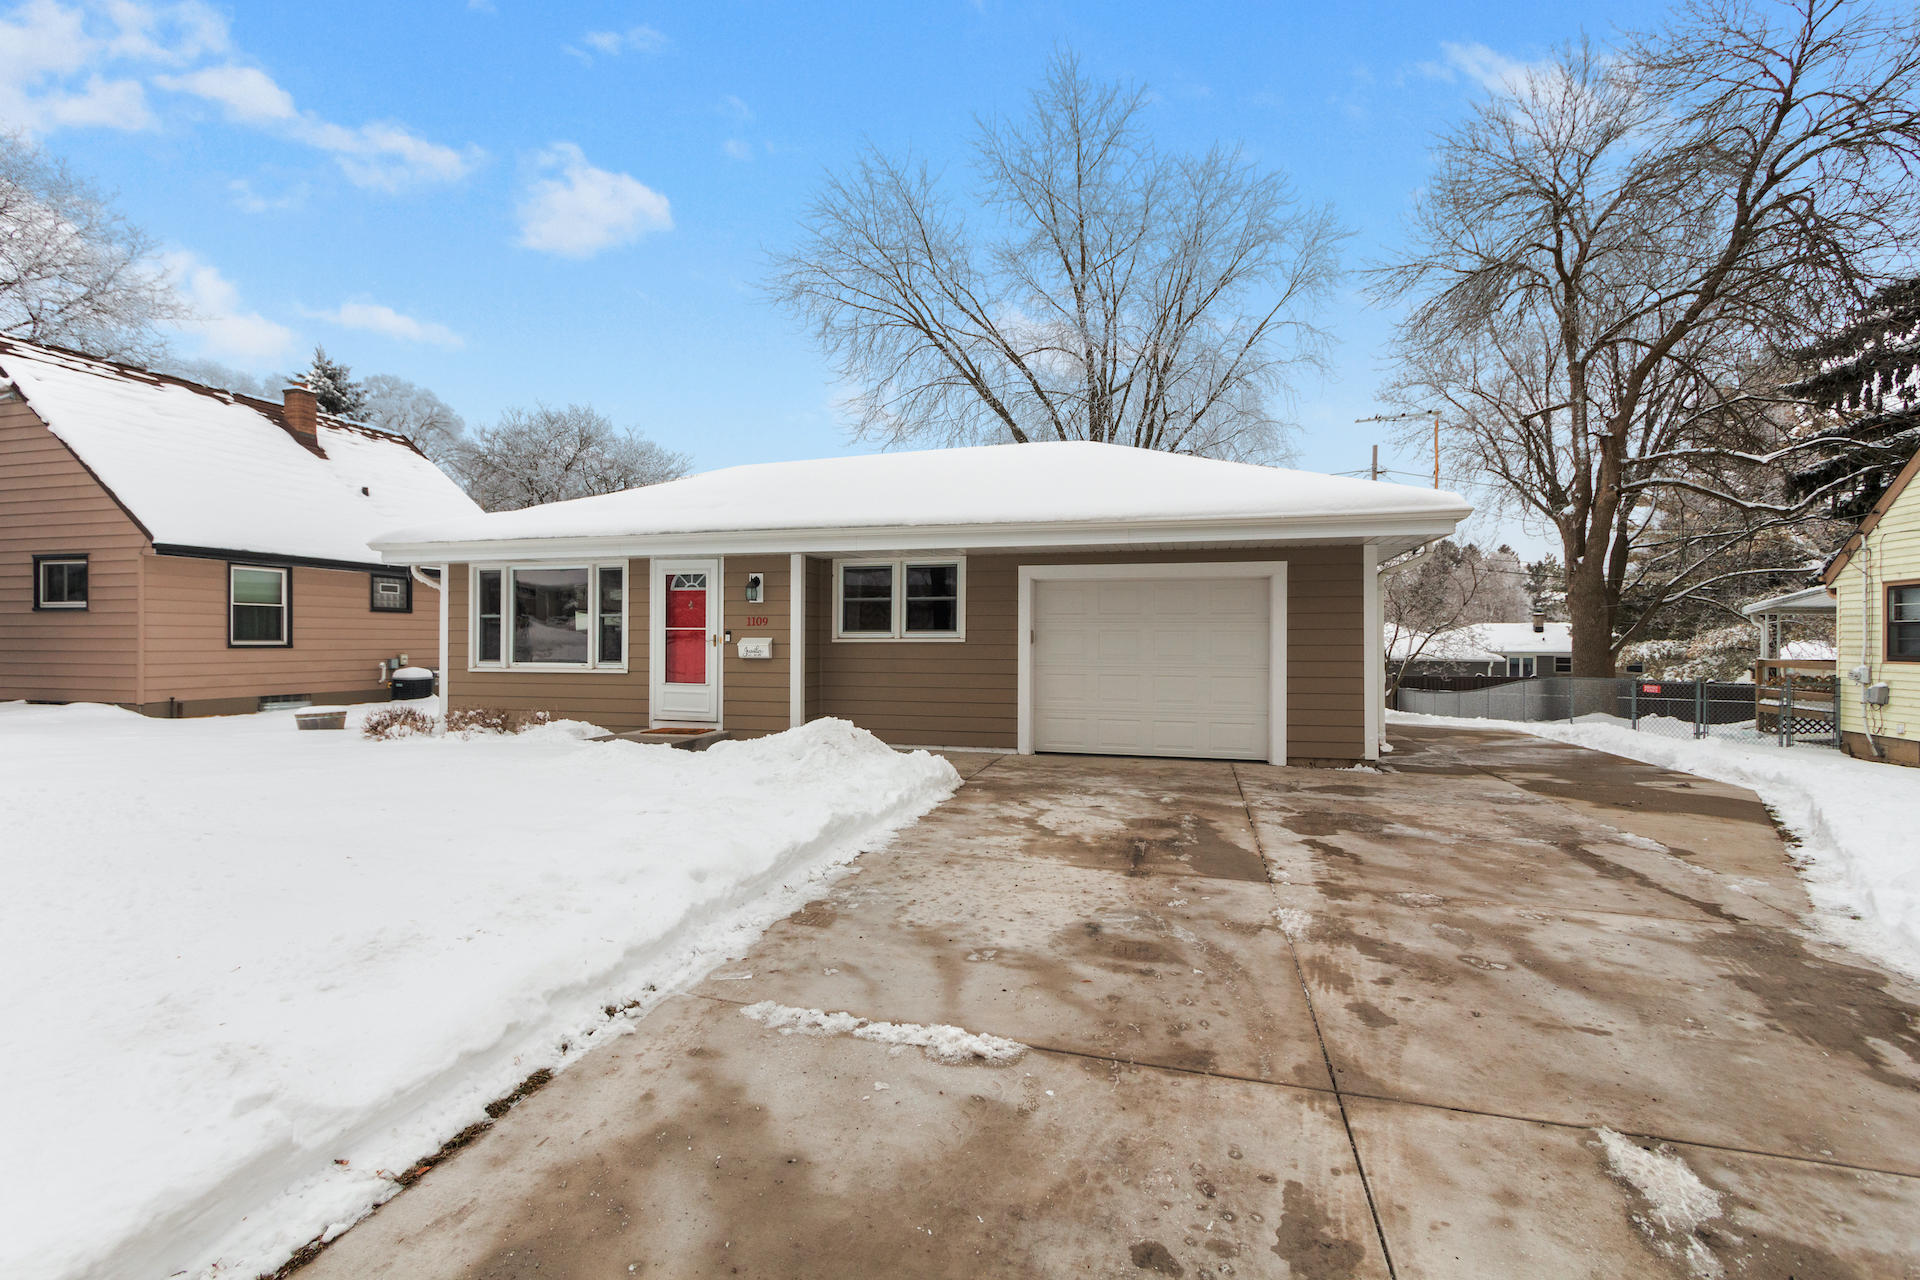 1109 Lawndale Ave, Waukesha, Wisconsin 53188, 3 Bedrooms Bedrooms, ,1 BathroomBathrooms,Single-Family,For Sale,Lawndale Ave,1722995